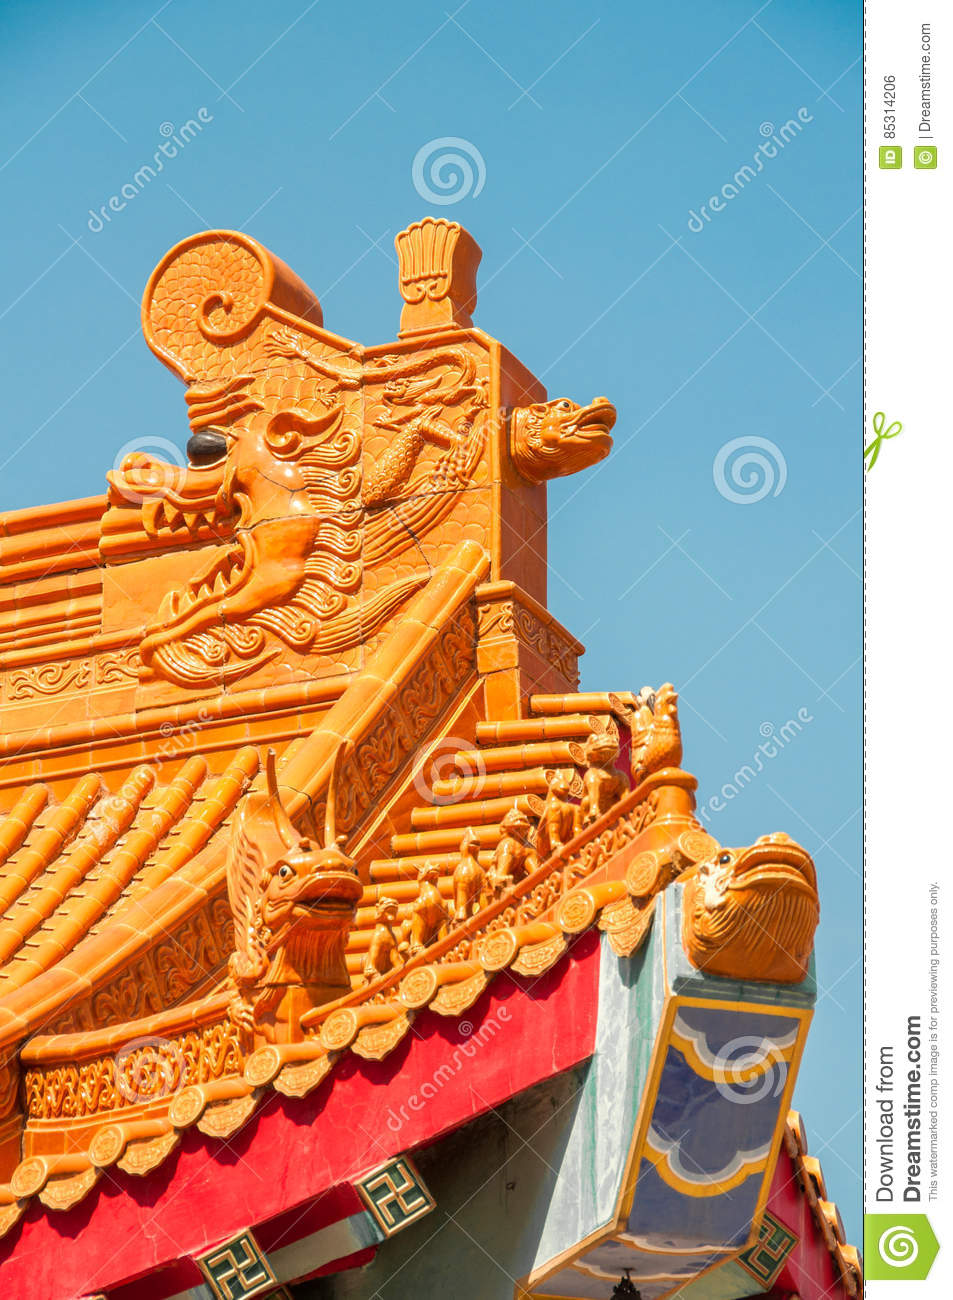 Chinese Zodiac on temple roof